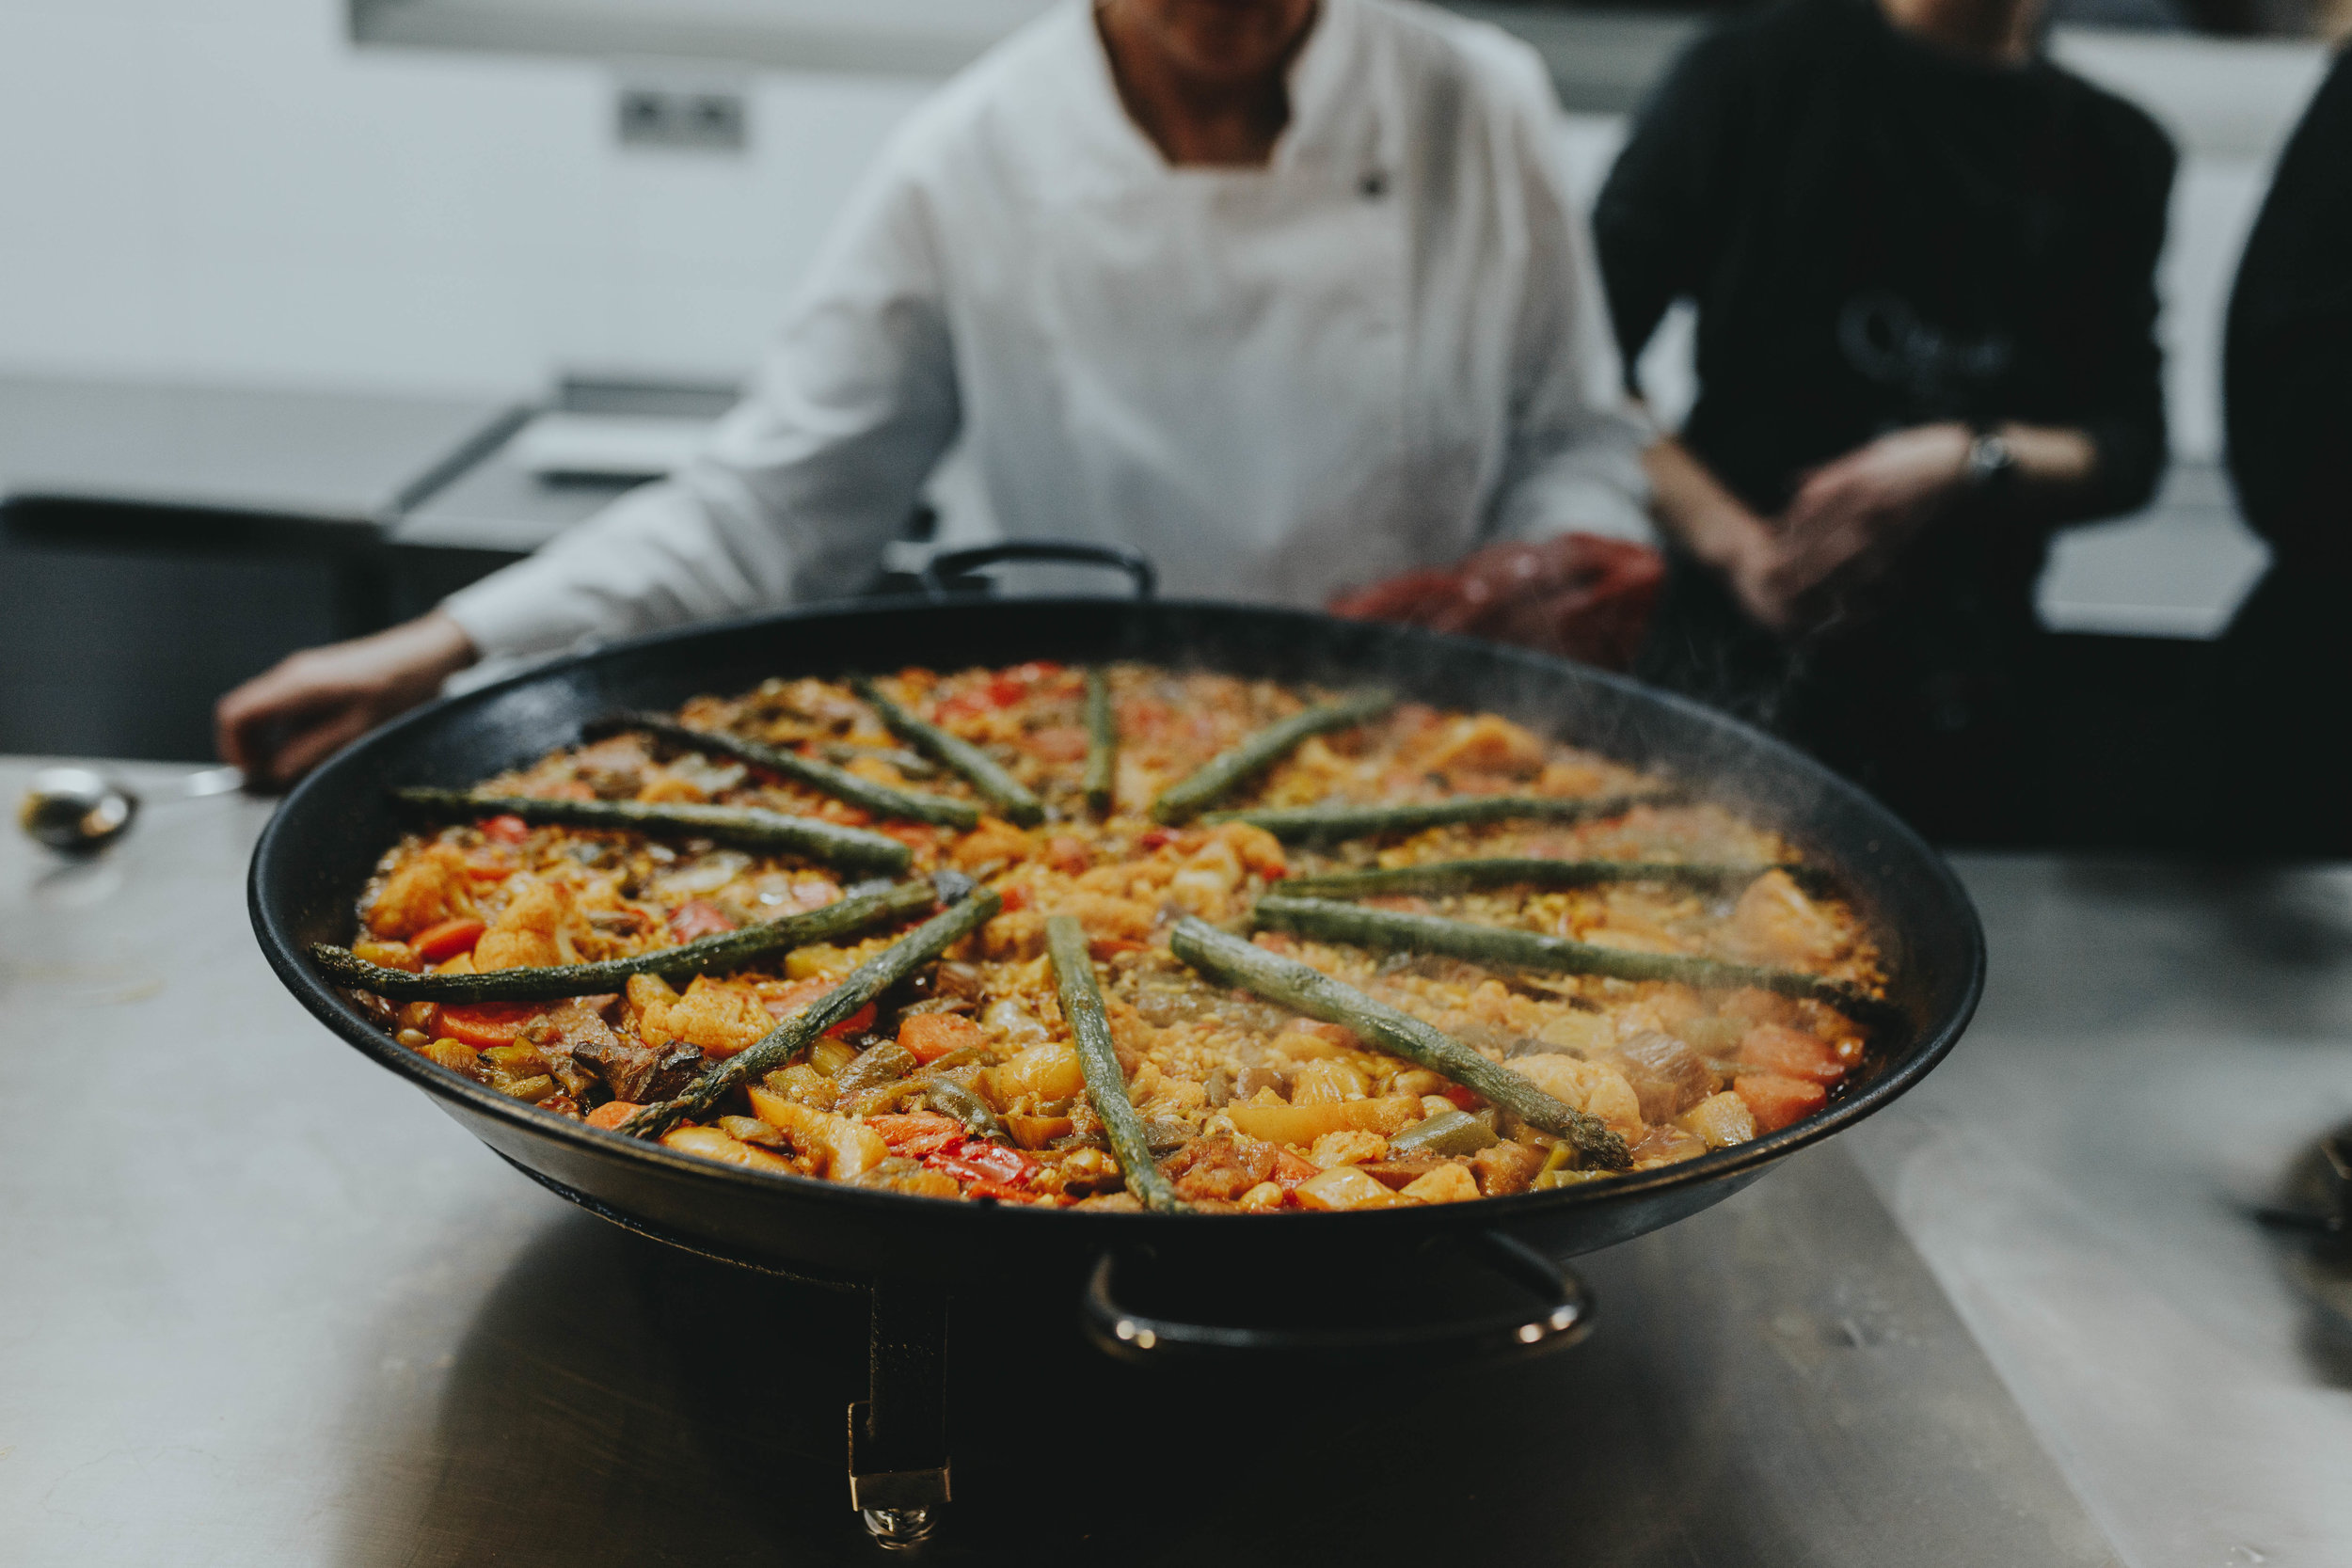 valencia Spain paella making school Ciee best things to do by portrait wedding Barcelona European Photographer from Nashville Emily Anne